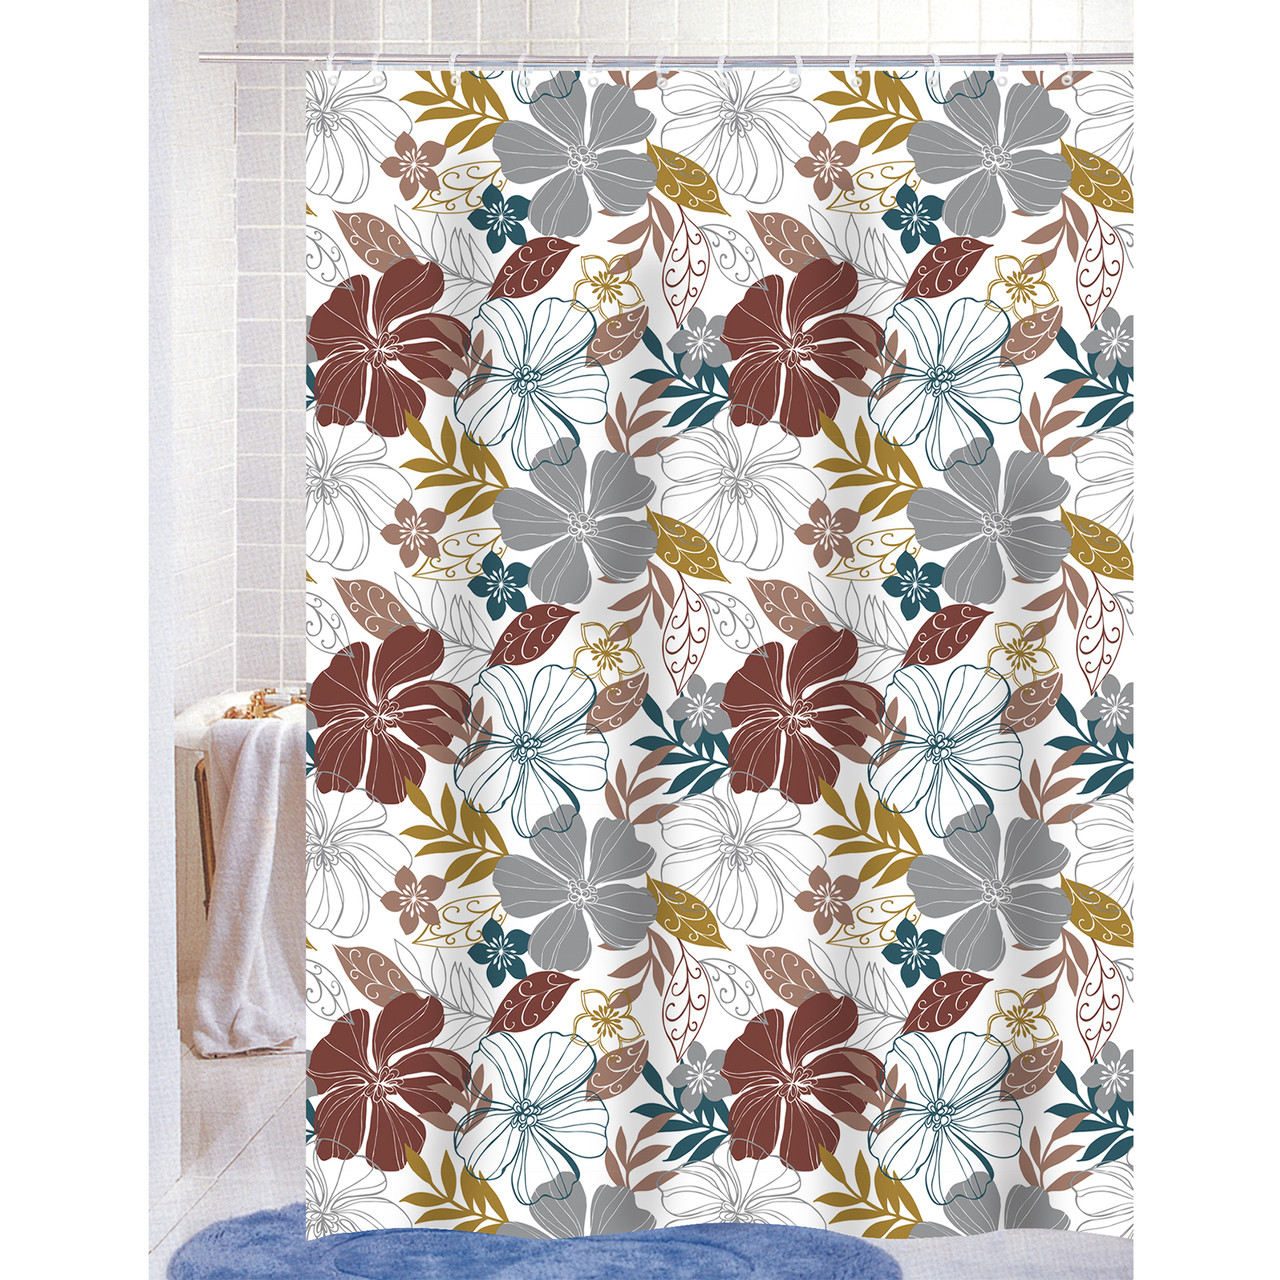 At Linen Store Our Shower Curtains Come In A Wide Variety Of Sizes And Patterns To Suit Any Bathroom We Also Carry Matching Sets That Include